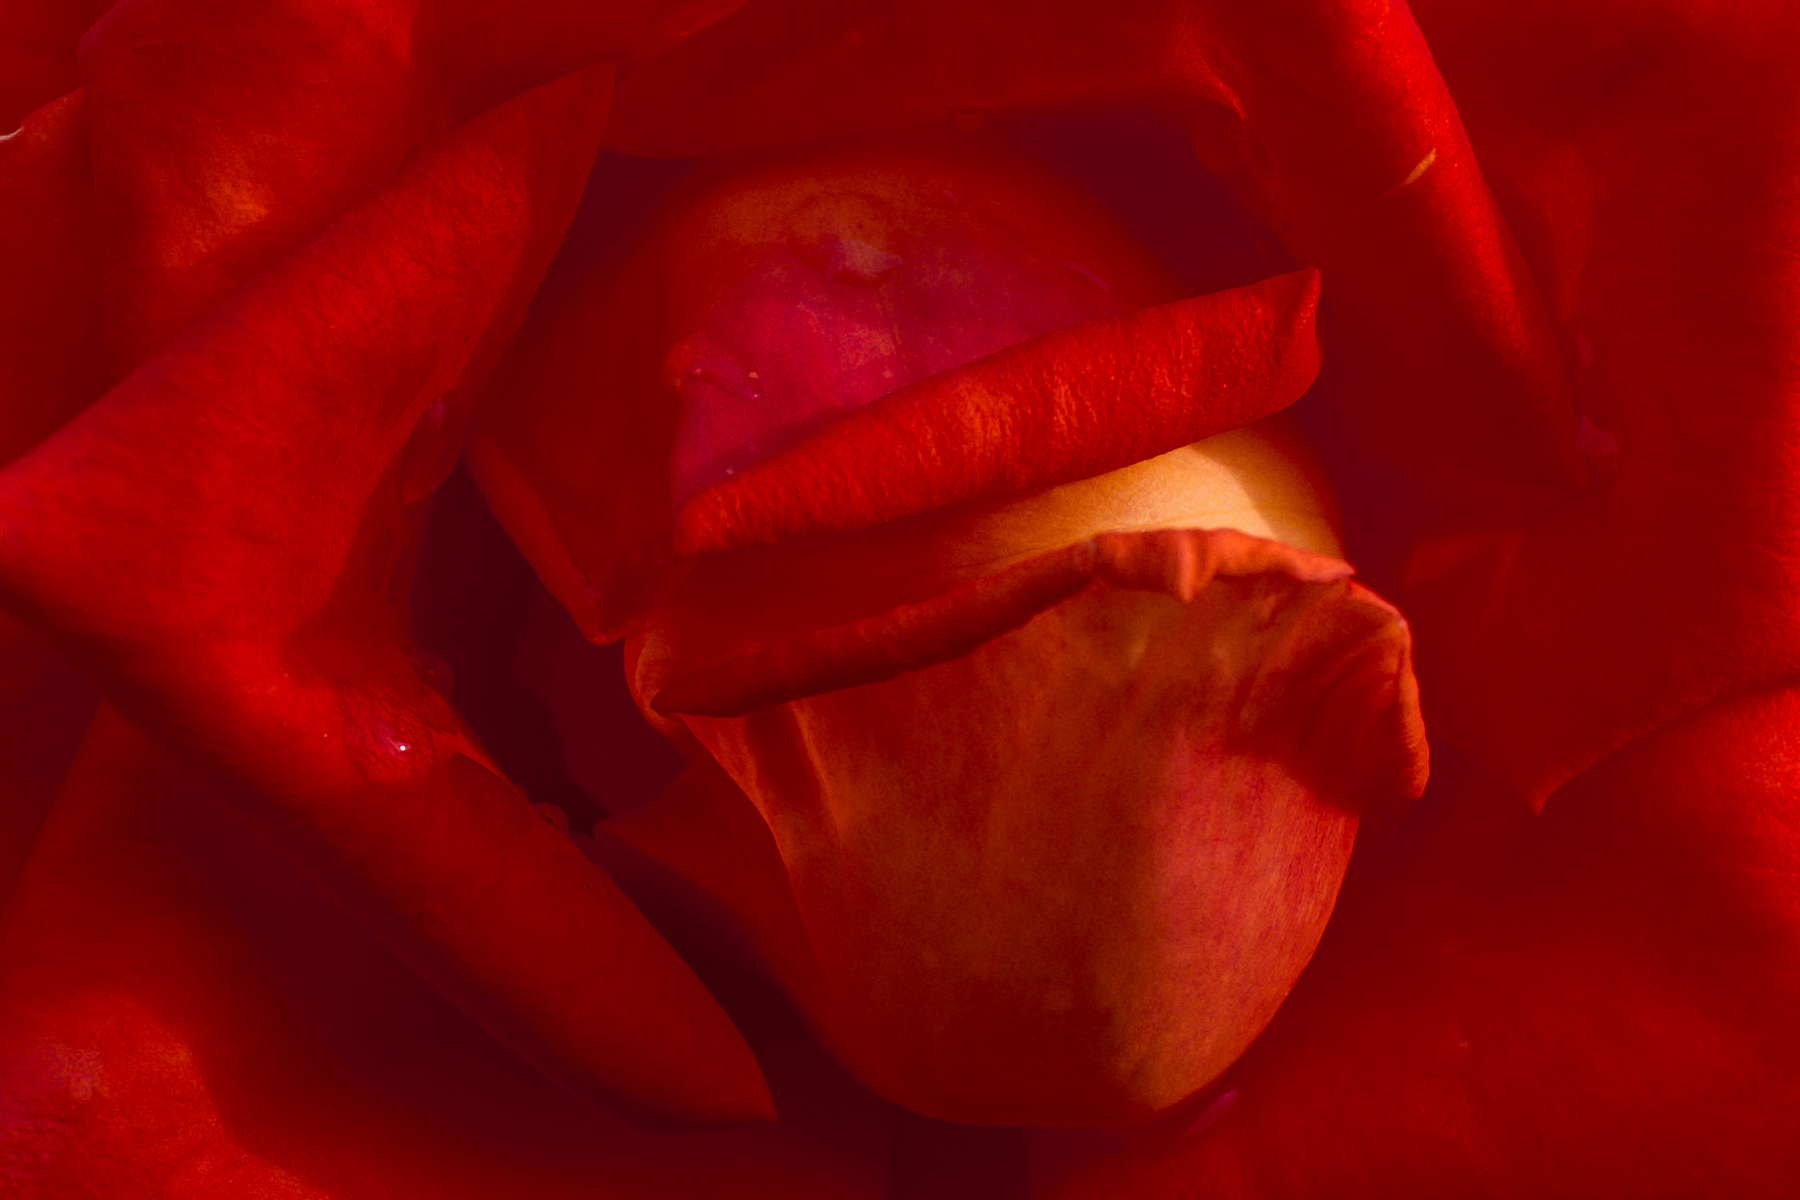 ... in the heart of the rose ......